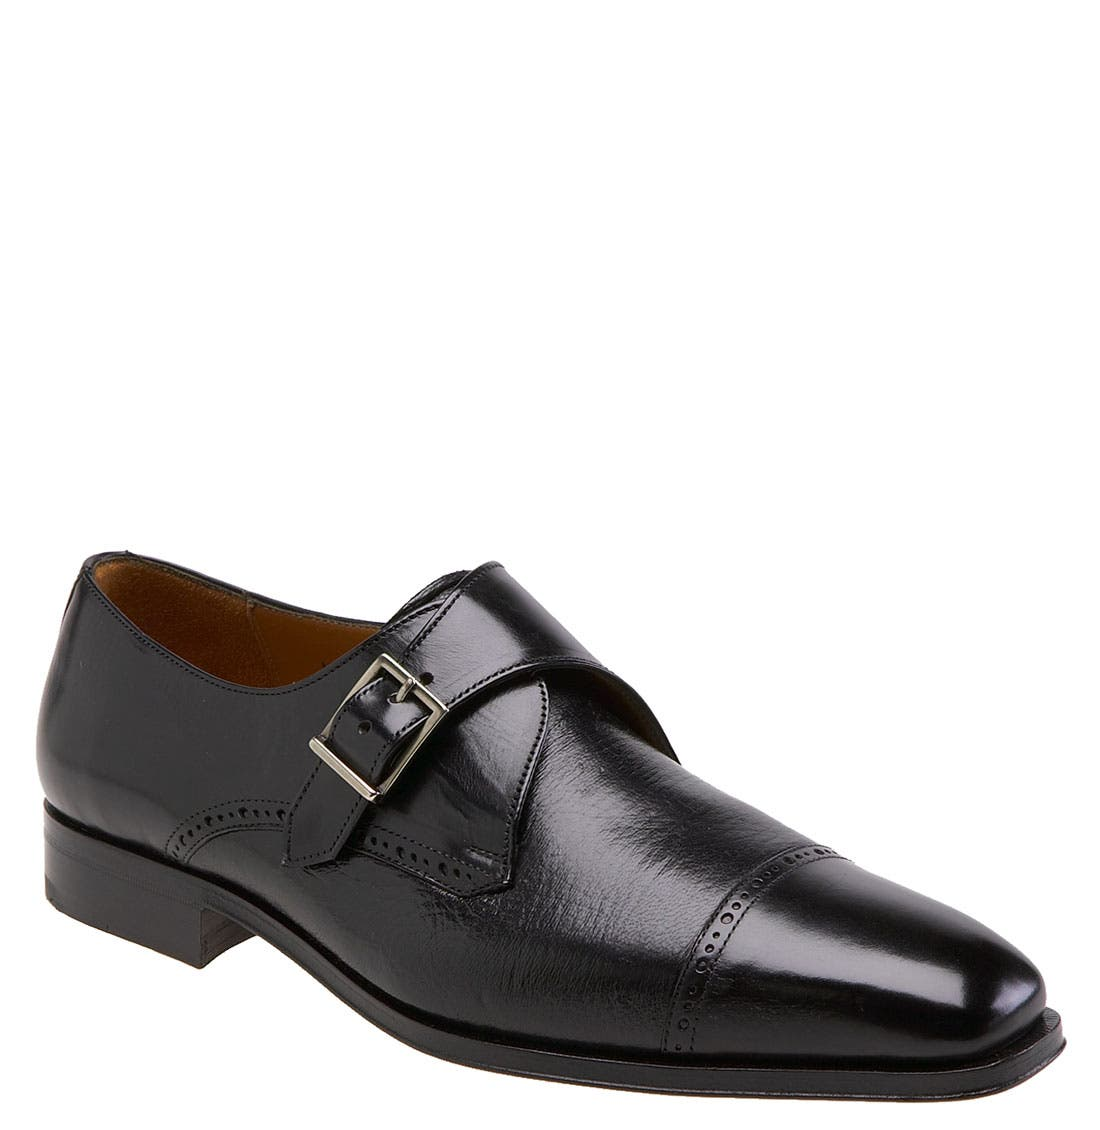 Main Image - Mezlan 'Mercker II' Monk Strap Loafer